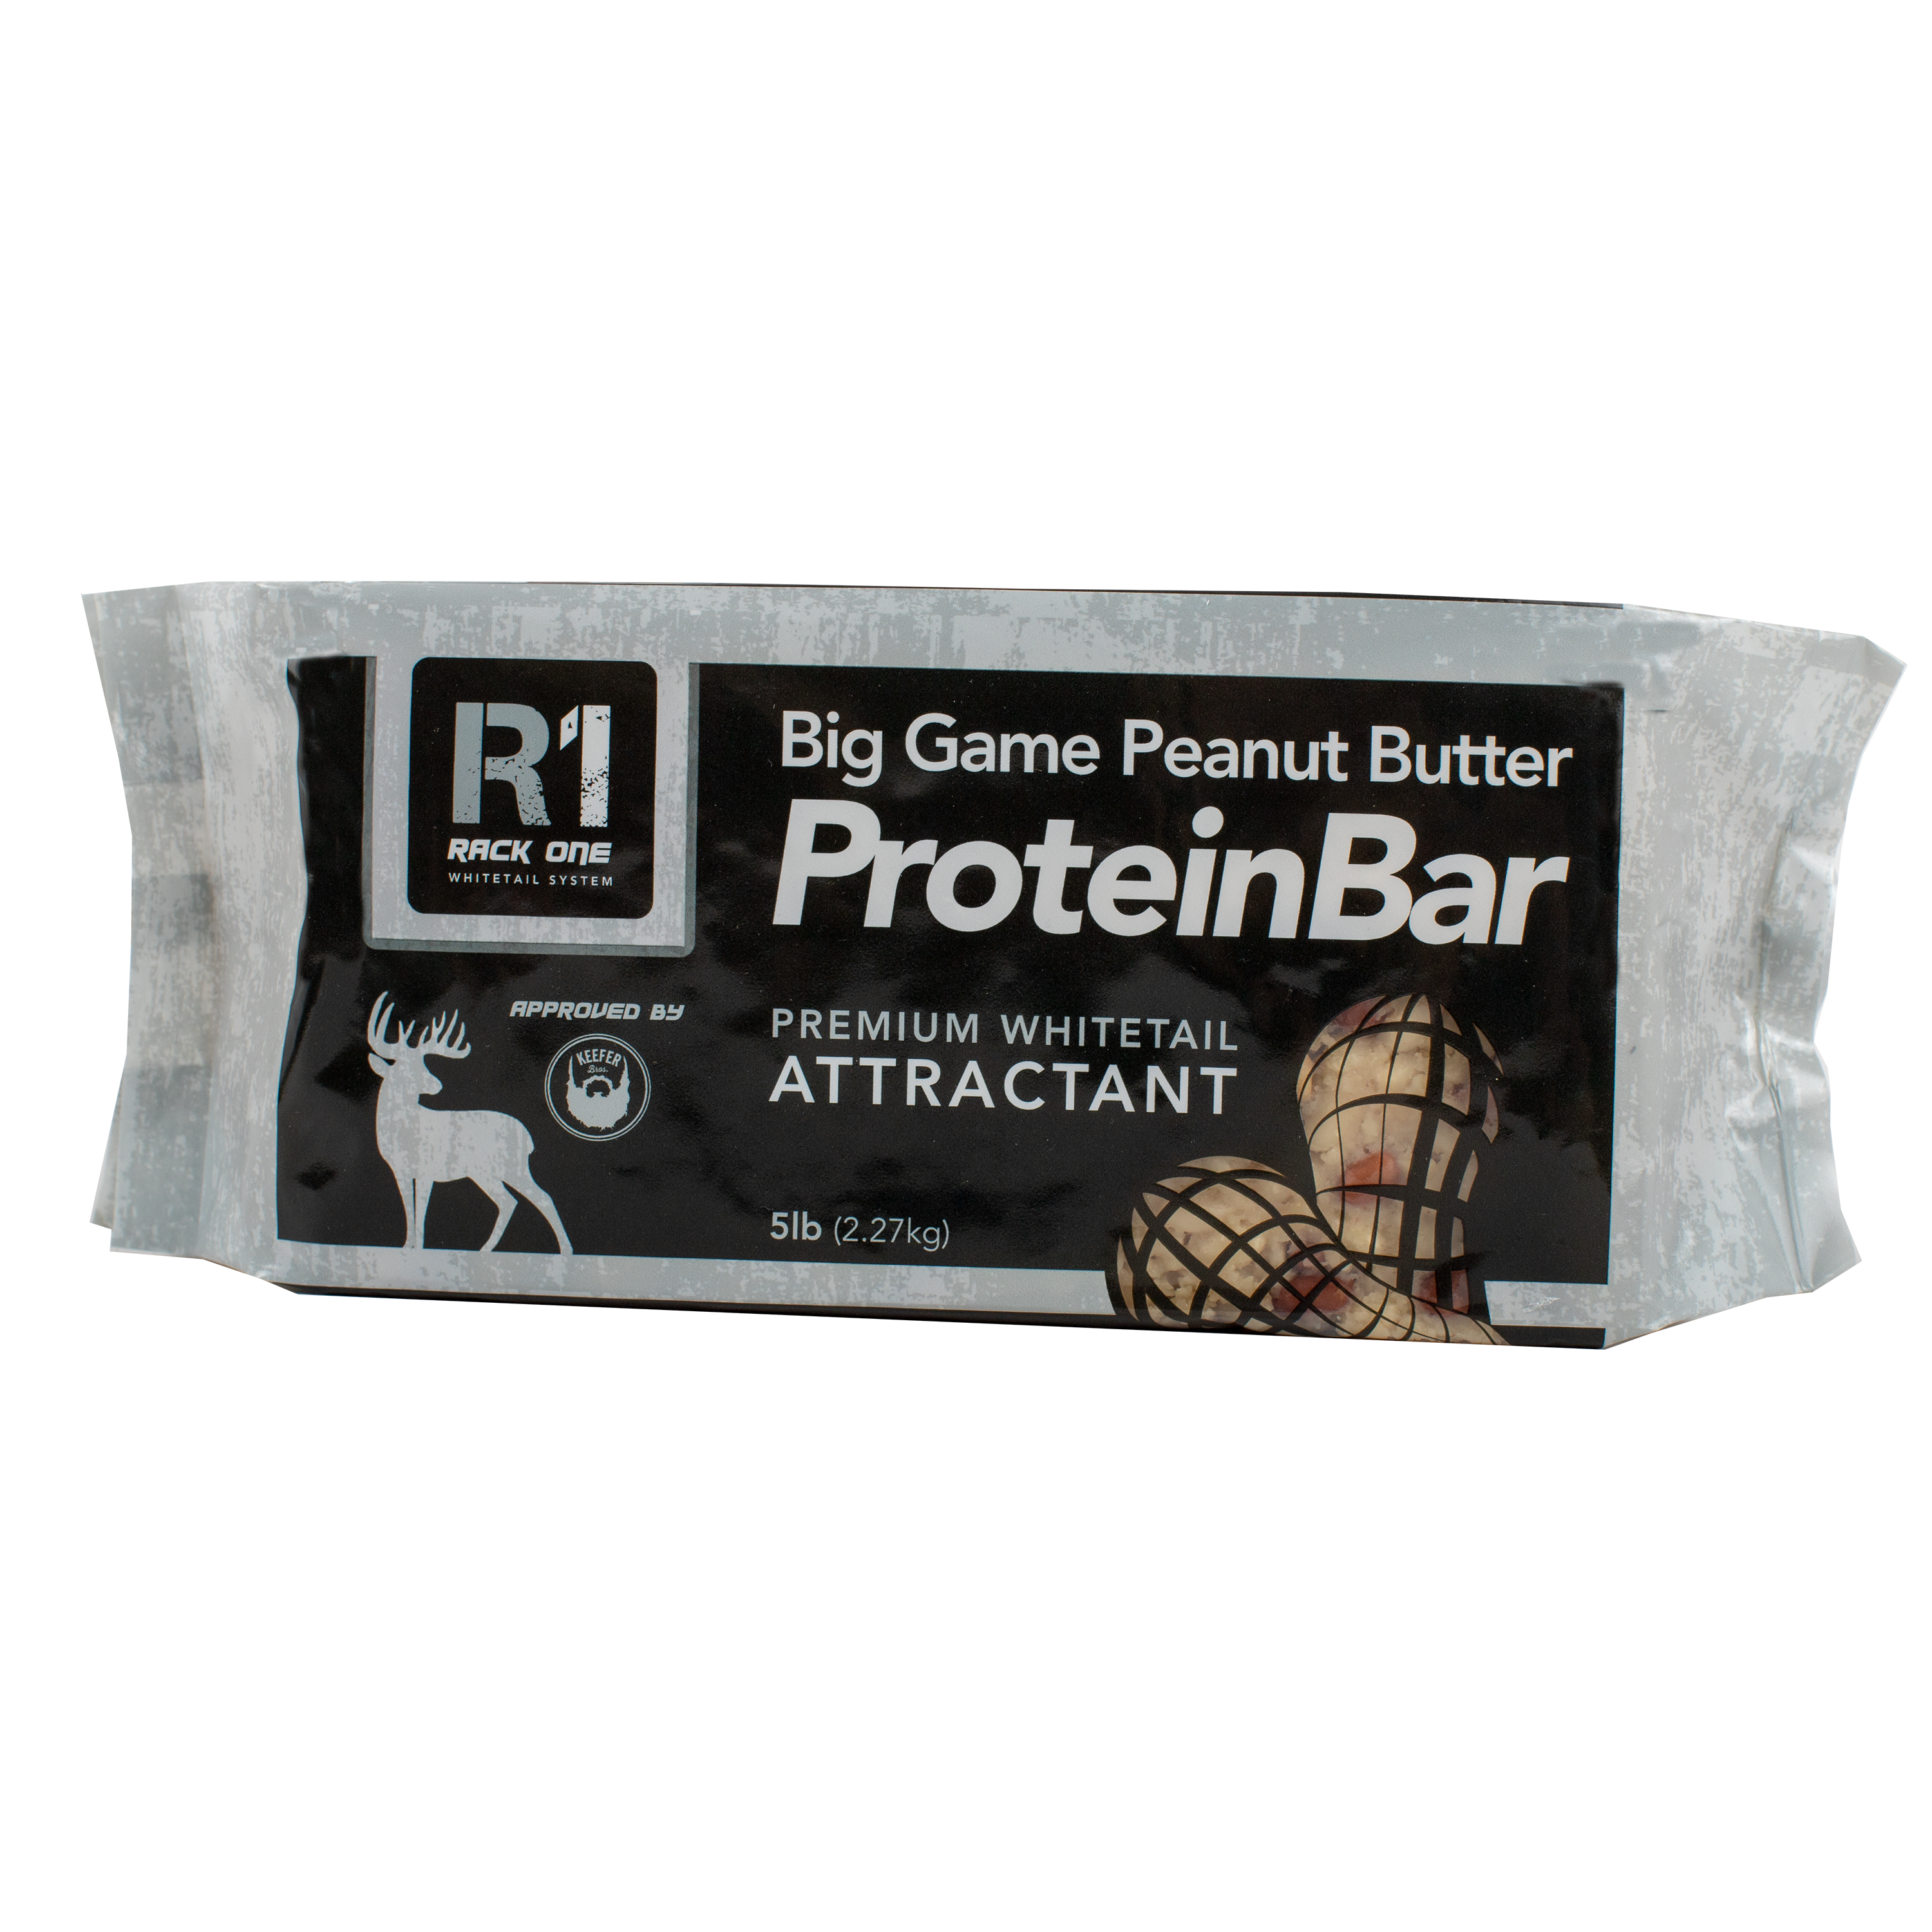 Rack One Expands Big Game Peanut Butter in 2019